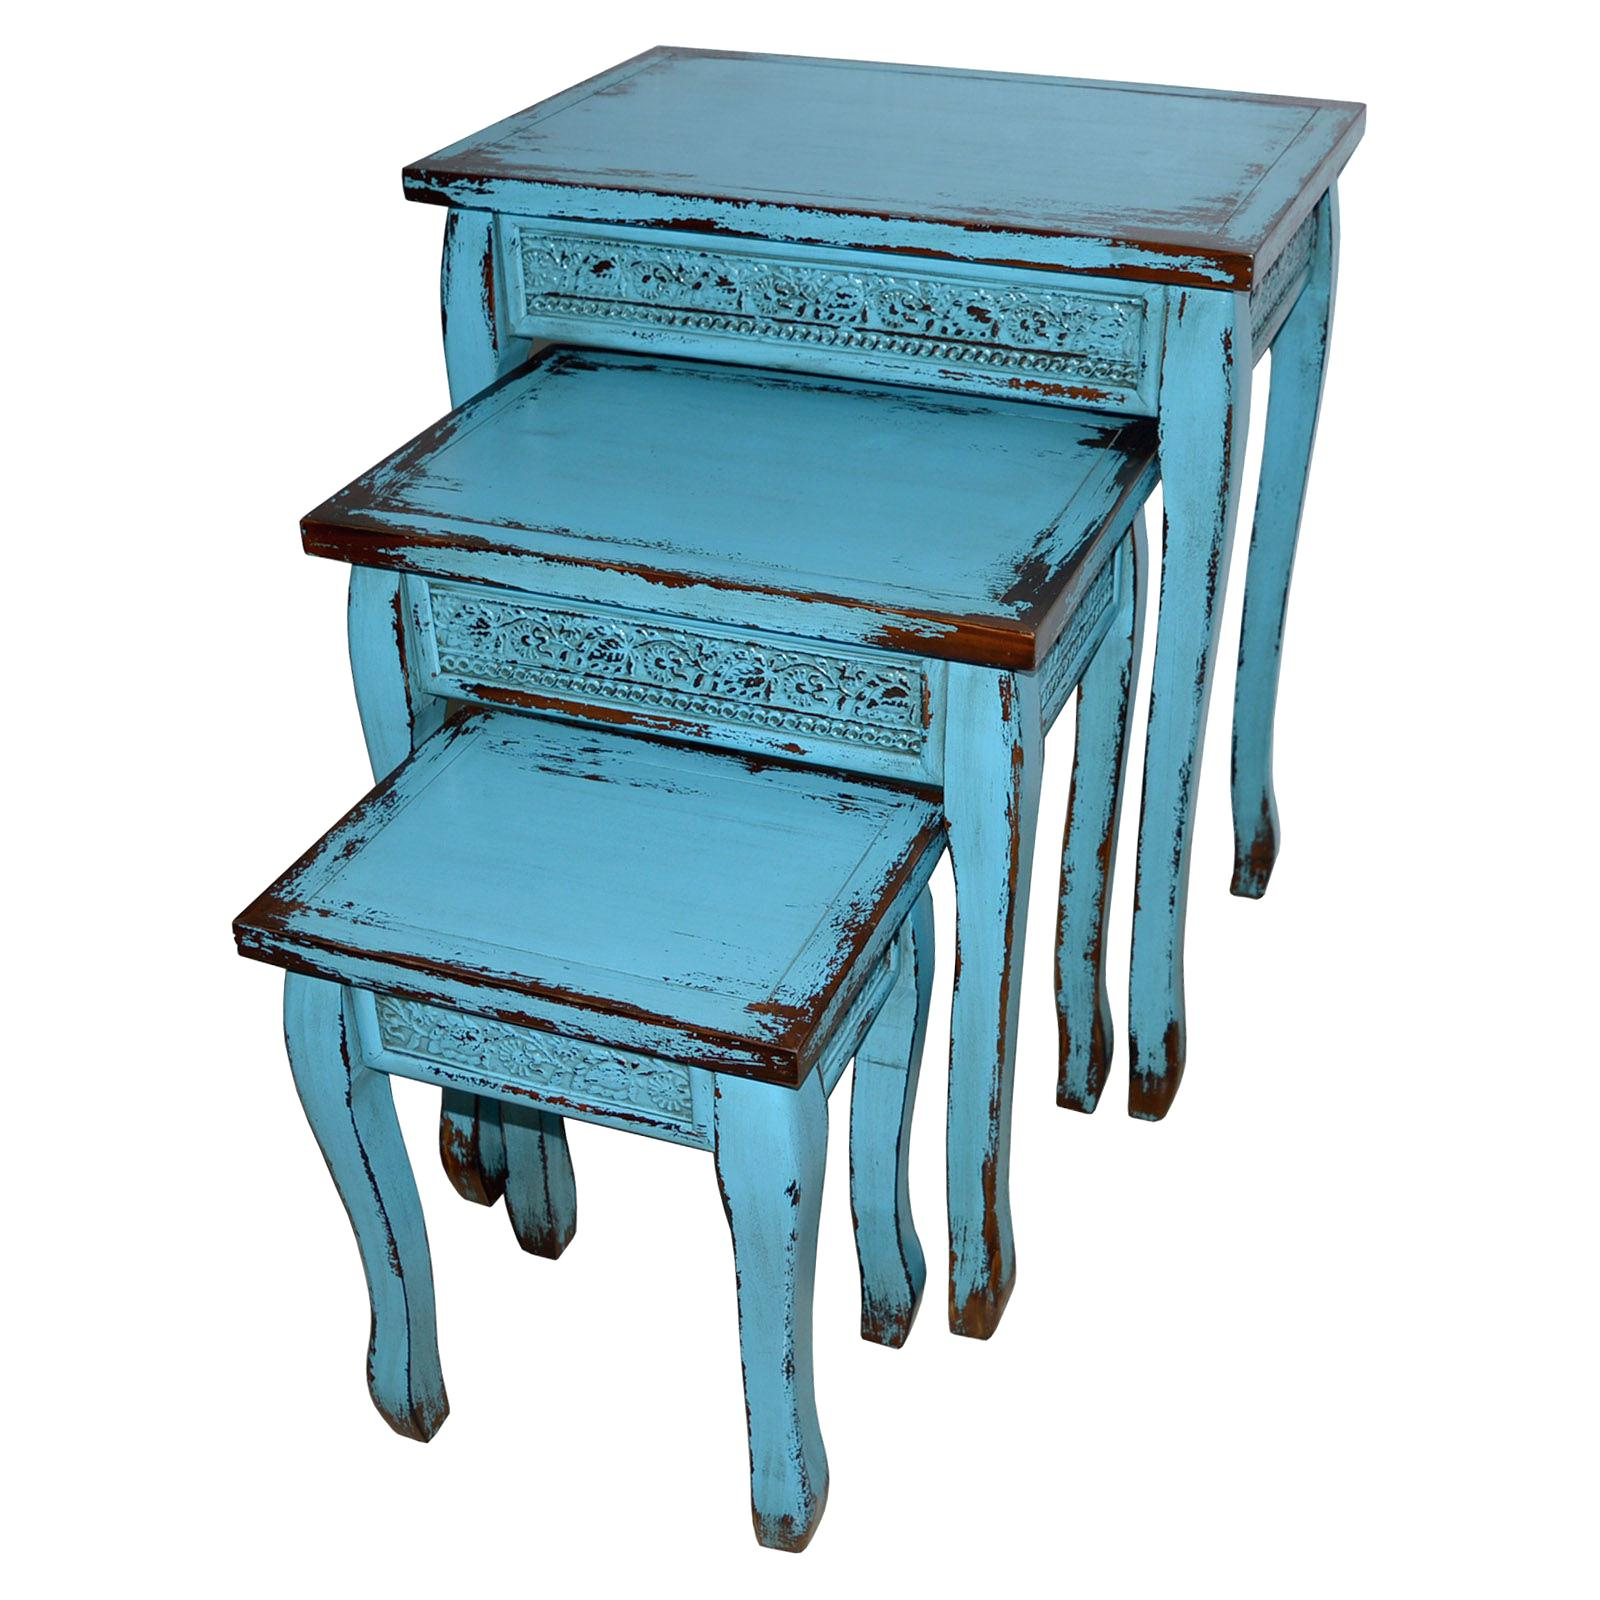 turquoise accent table lovable teal blue wooden distressed side large target fretwork threshold end tables from covers square bedside set hampton patio furniture small black